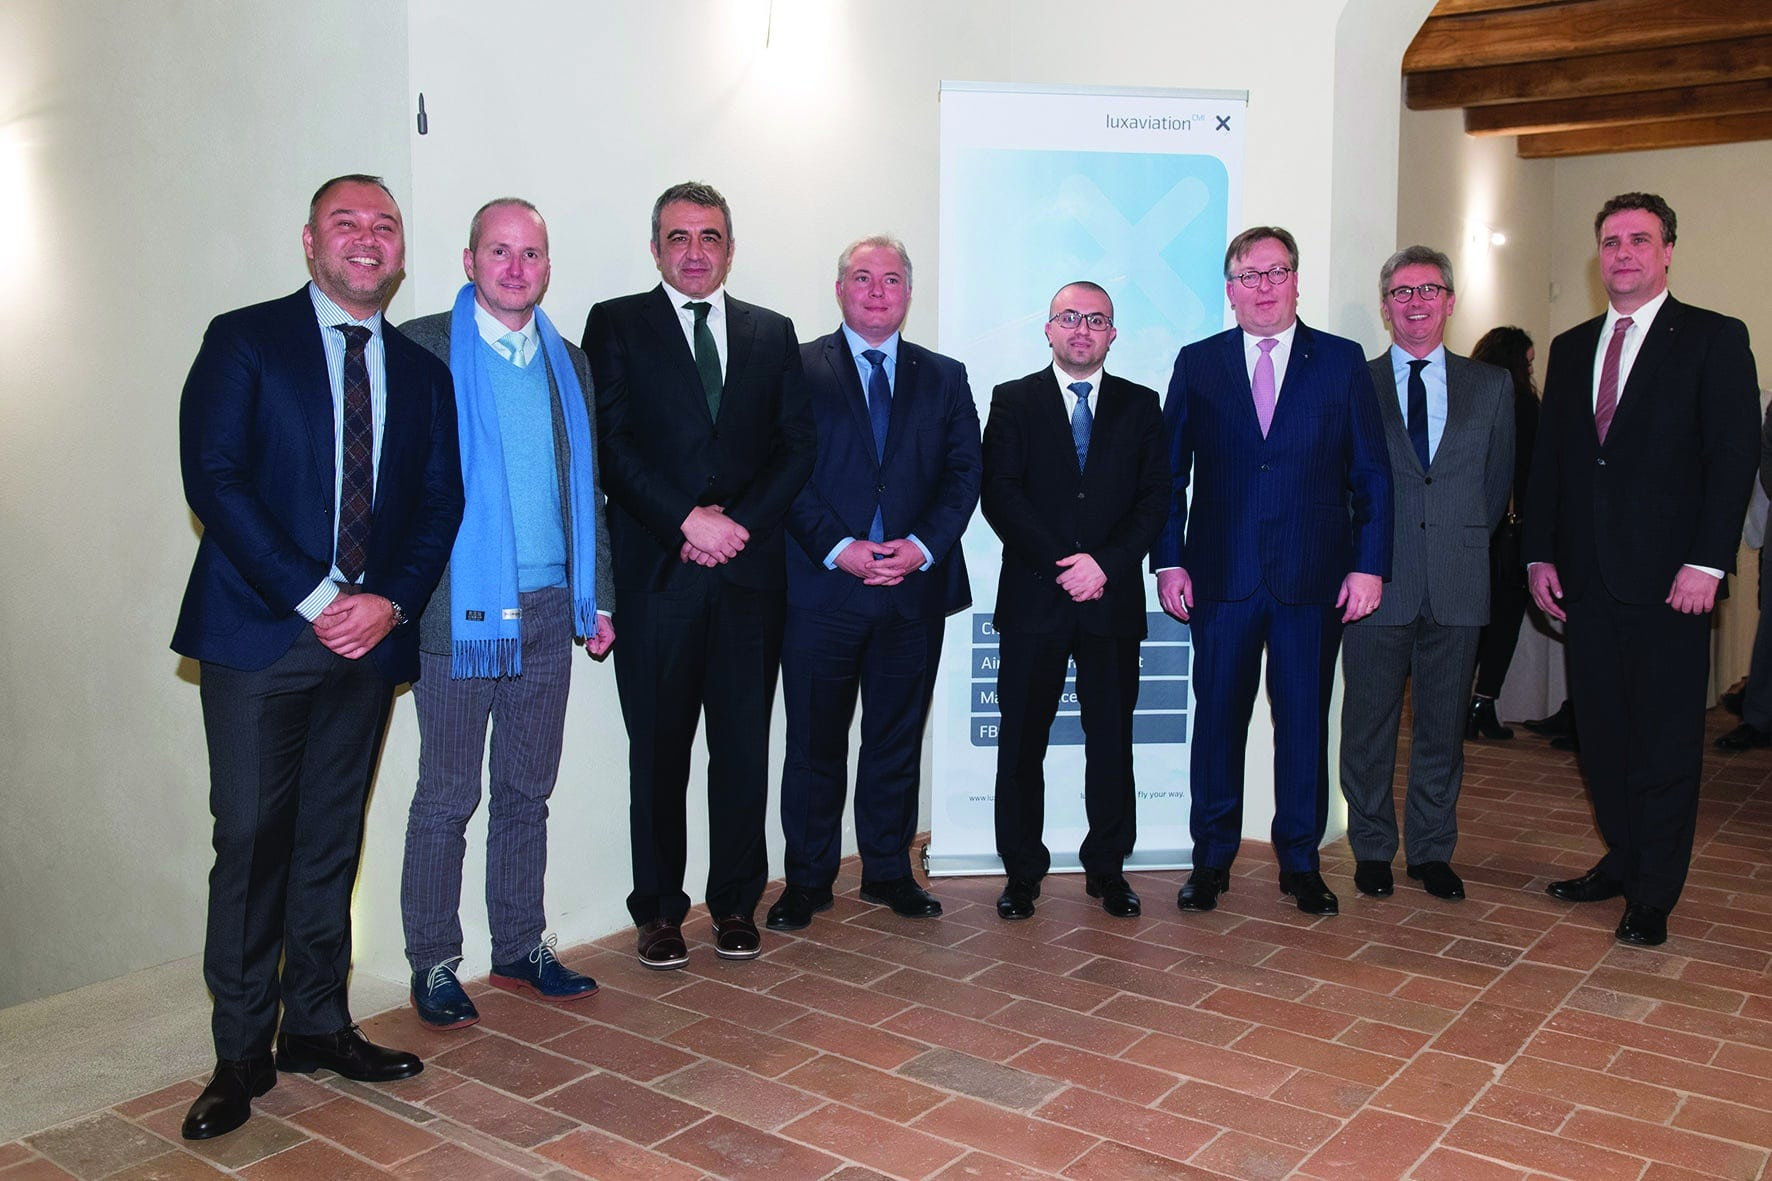 New Luxaviation AOC in San Marino to benefit global customers